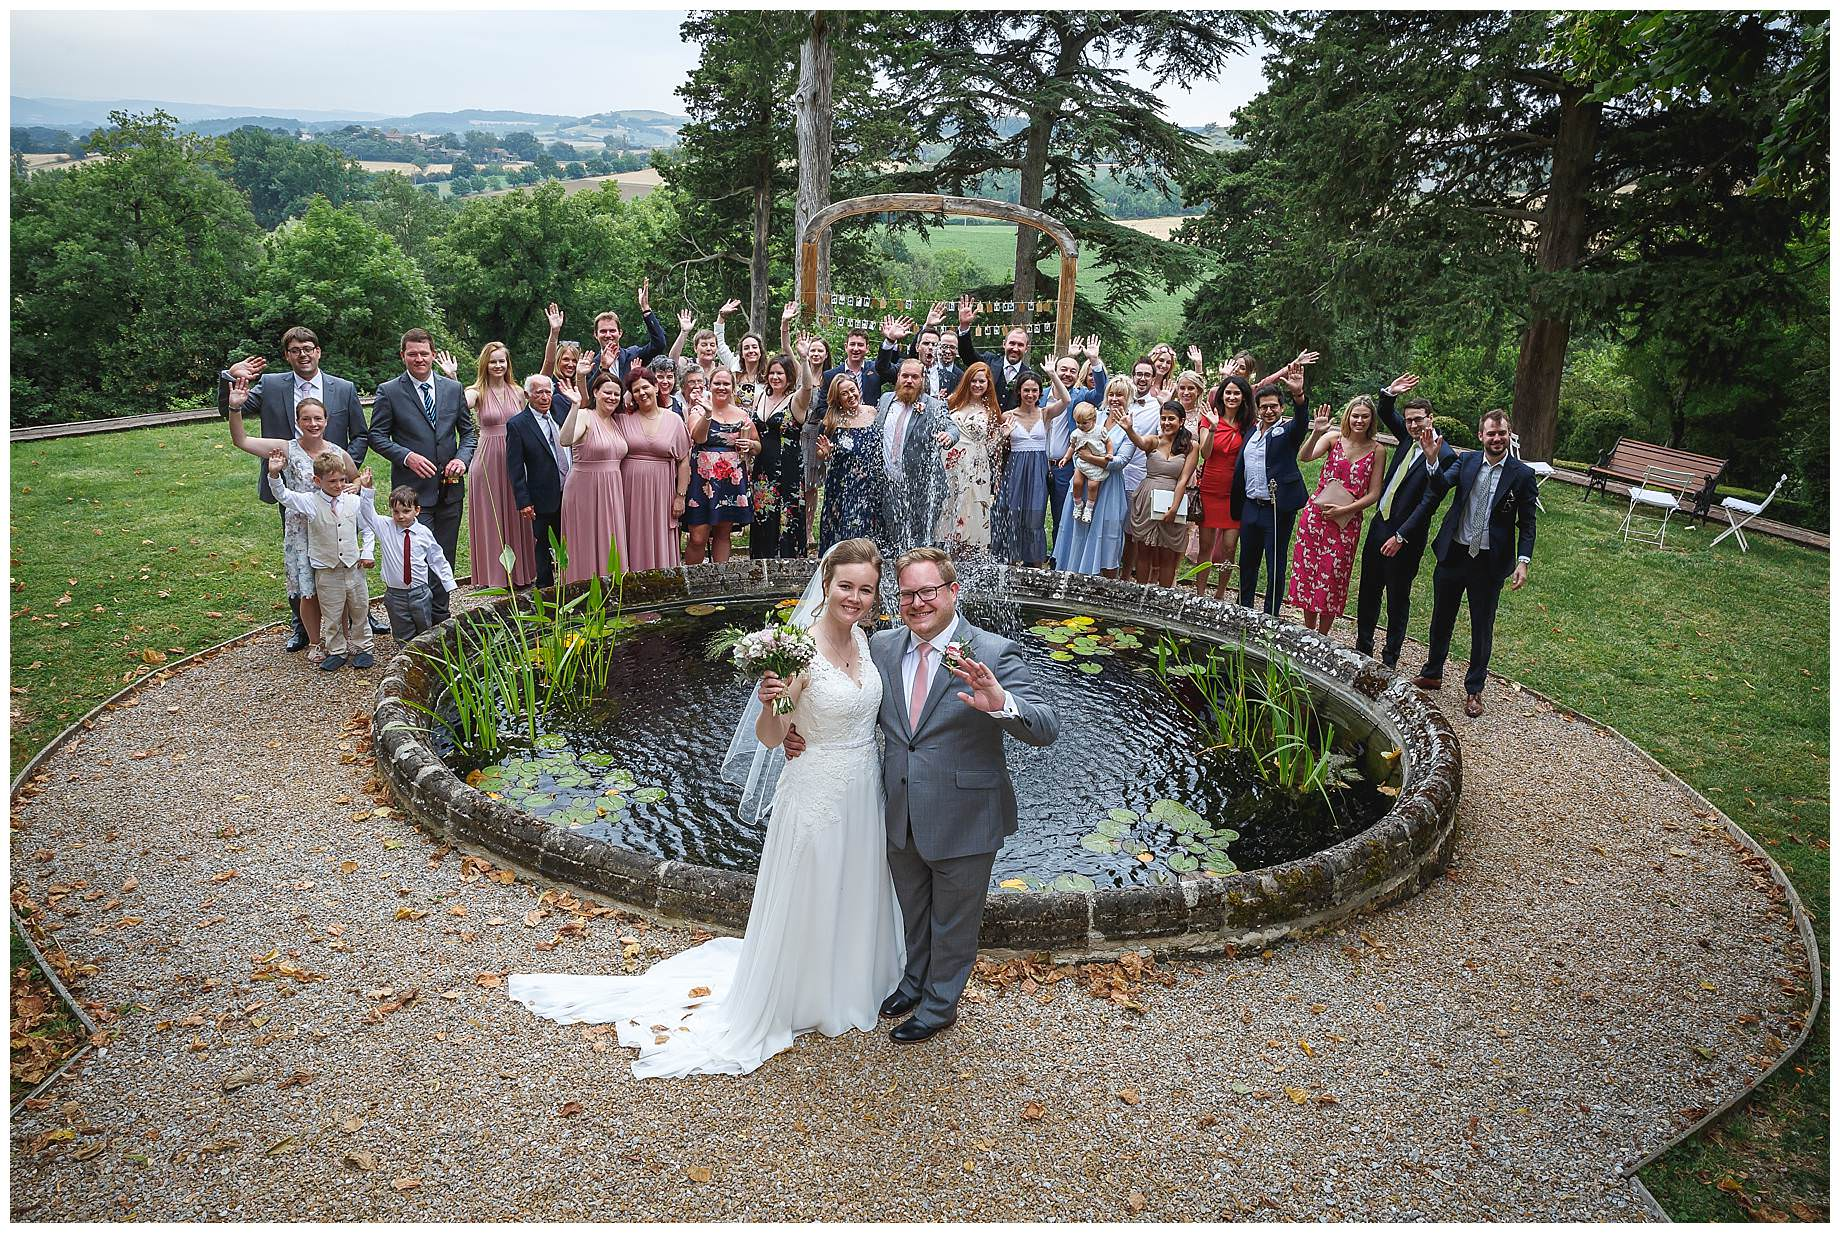 All wedding guests at Chateau Brametourte Wedding